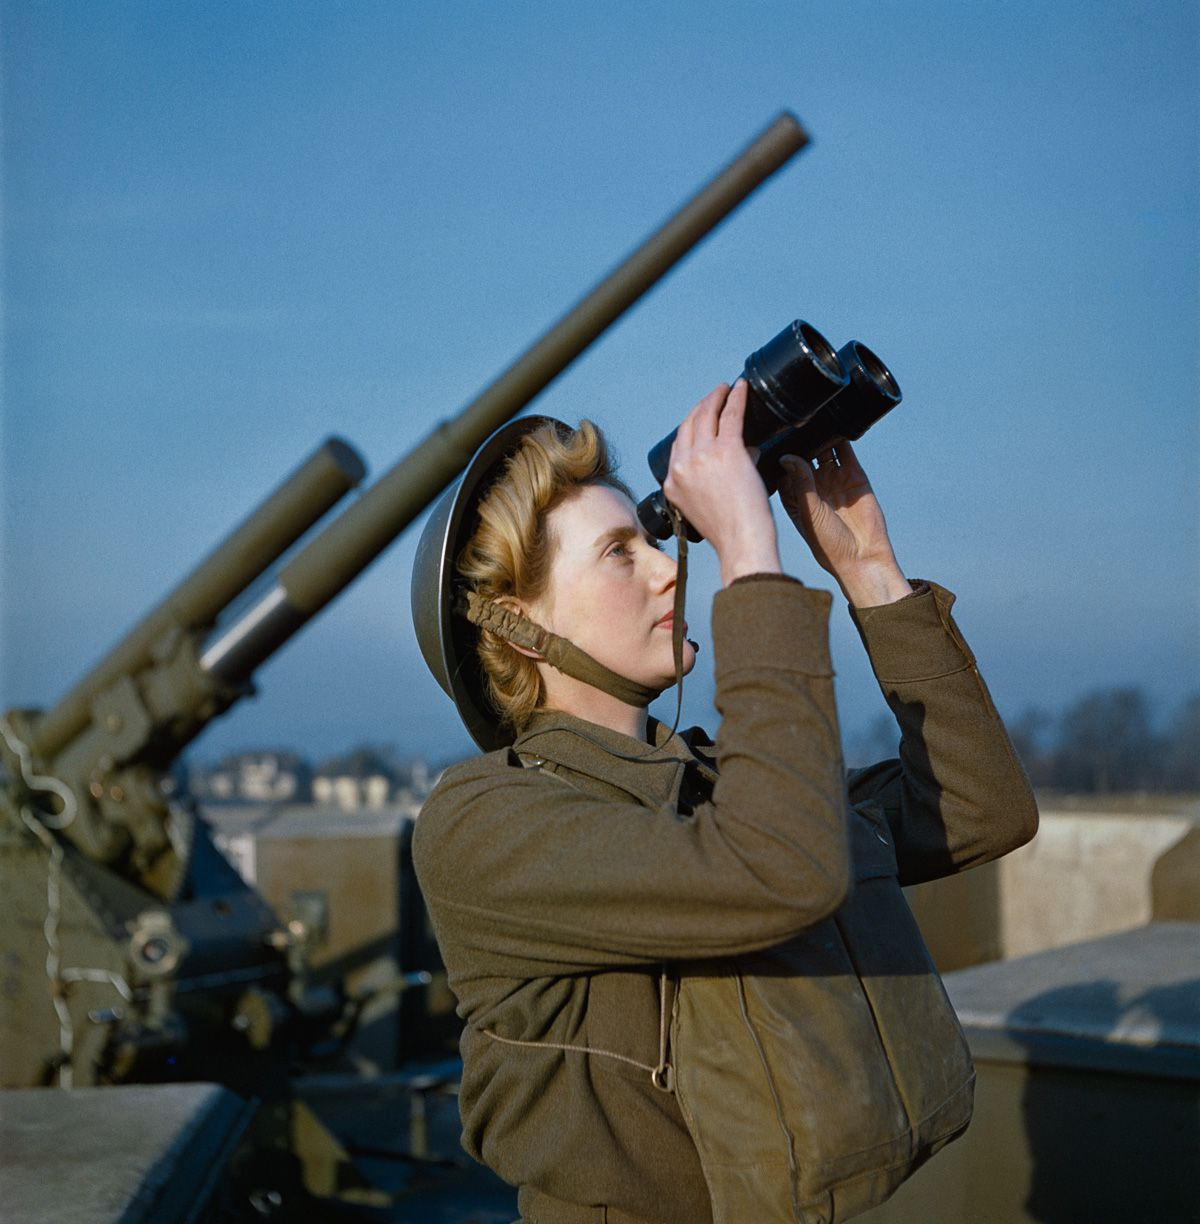 December 1942 An Auxiliary Territorial Service (ATS) 'spotter' at a 3.7-inch anti-aircraft gun site.